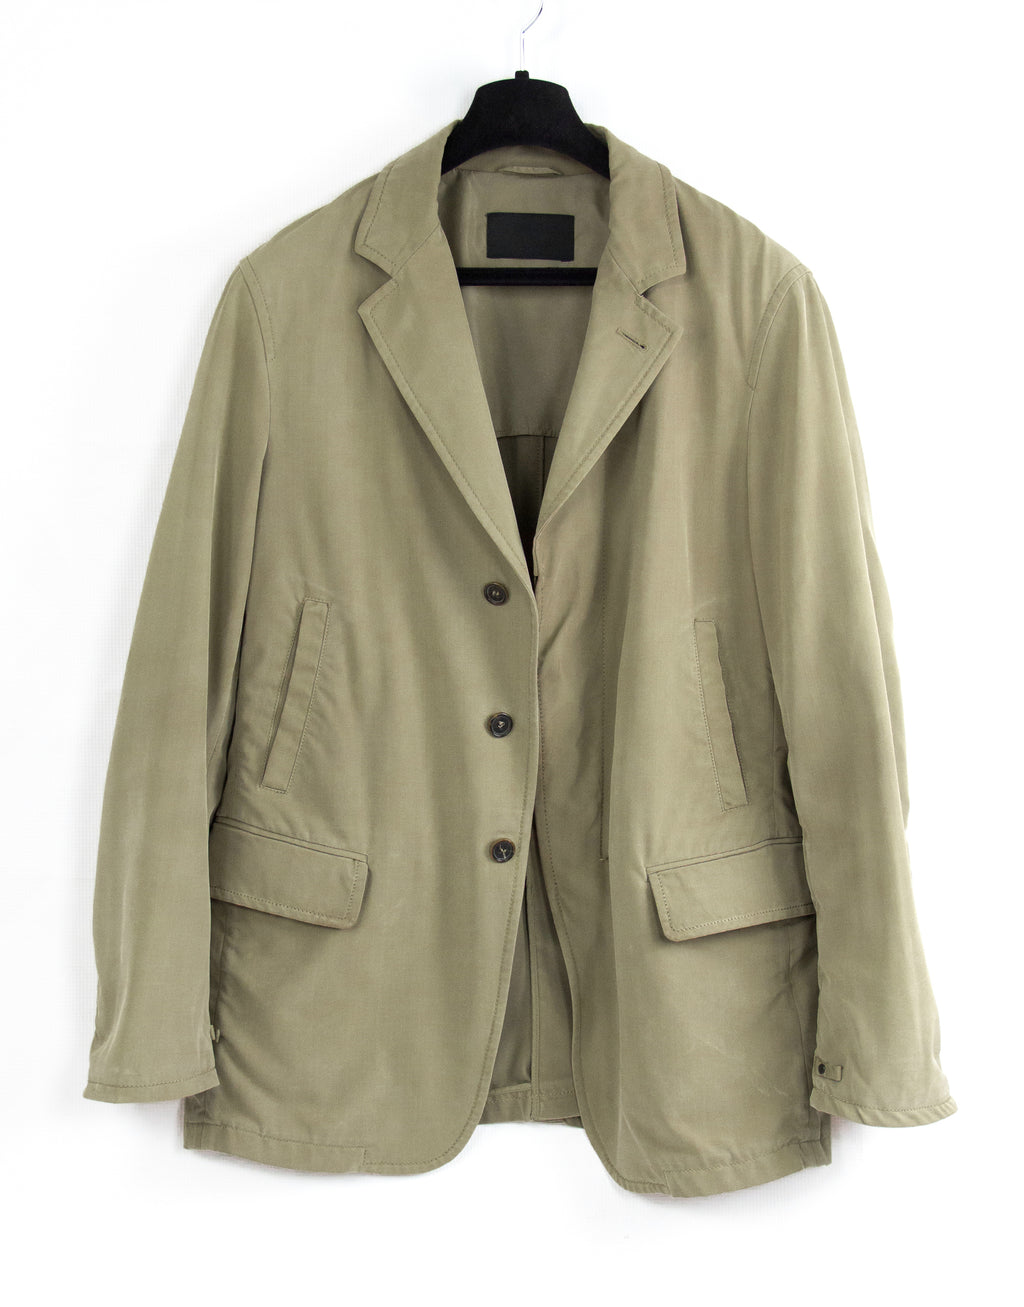 PRADA Khaki Brown Sport Coat Jacket With Leather Details, SIZE L - secondfirst